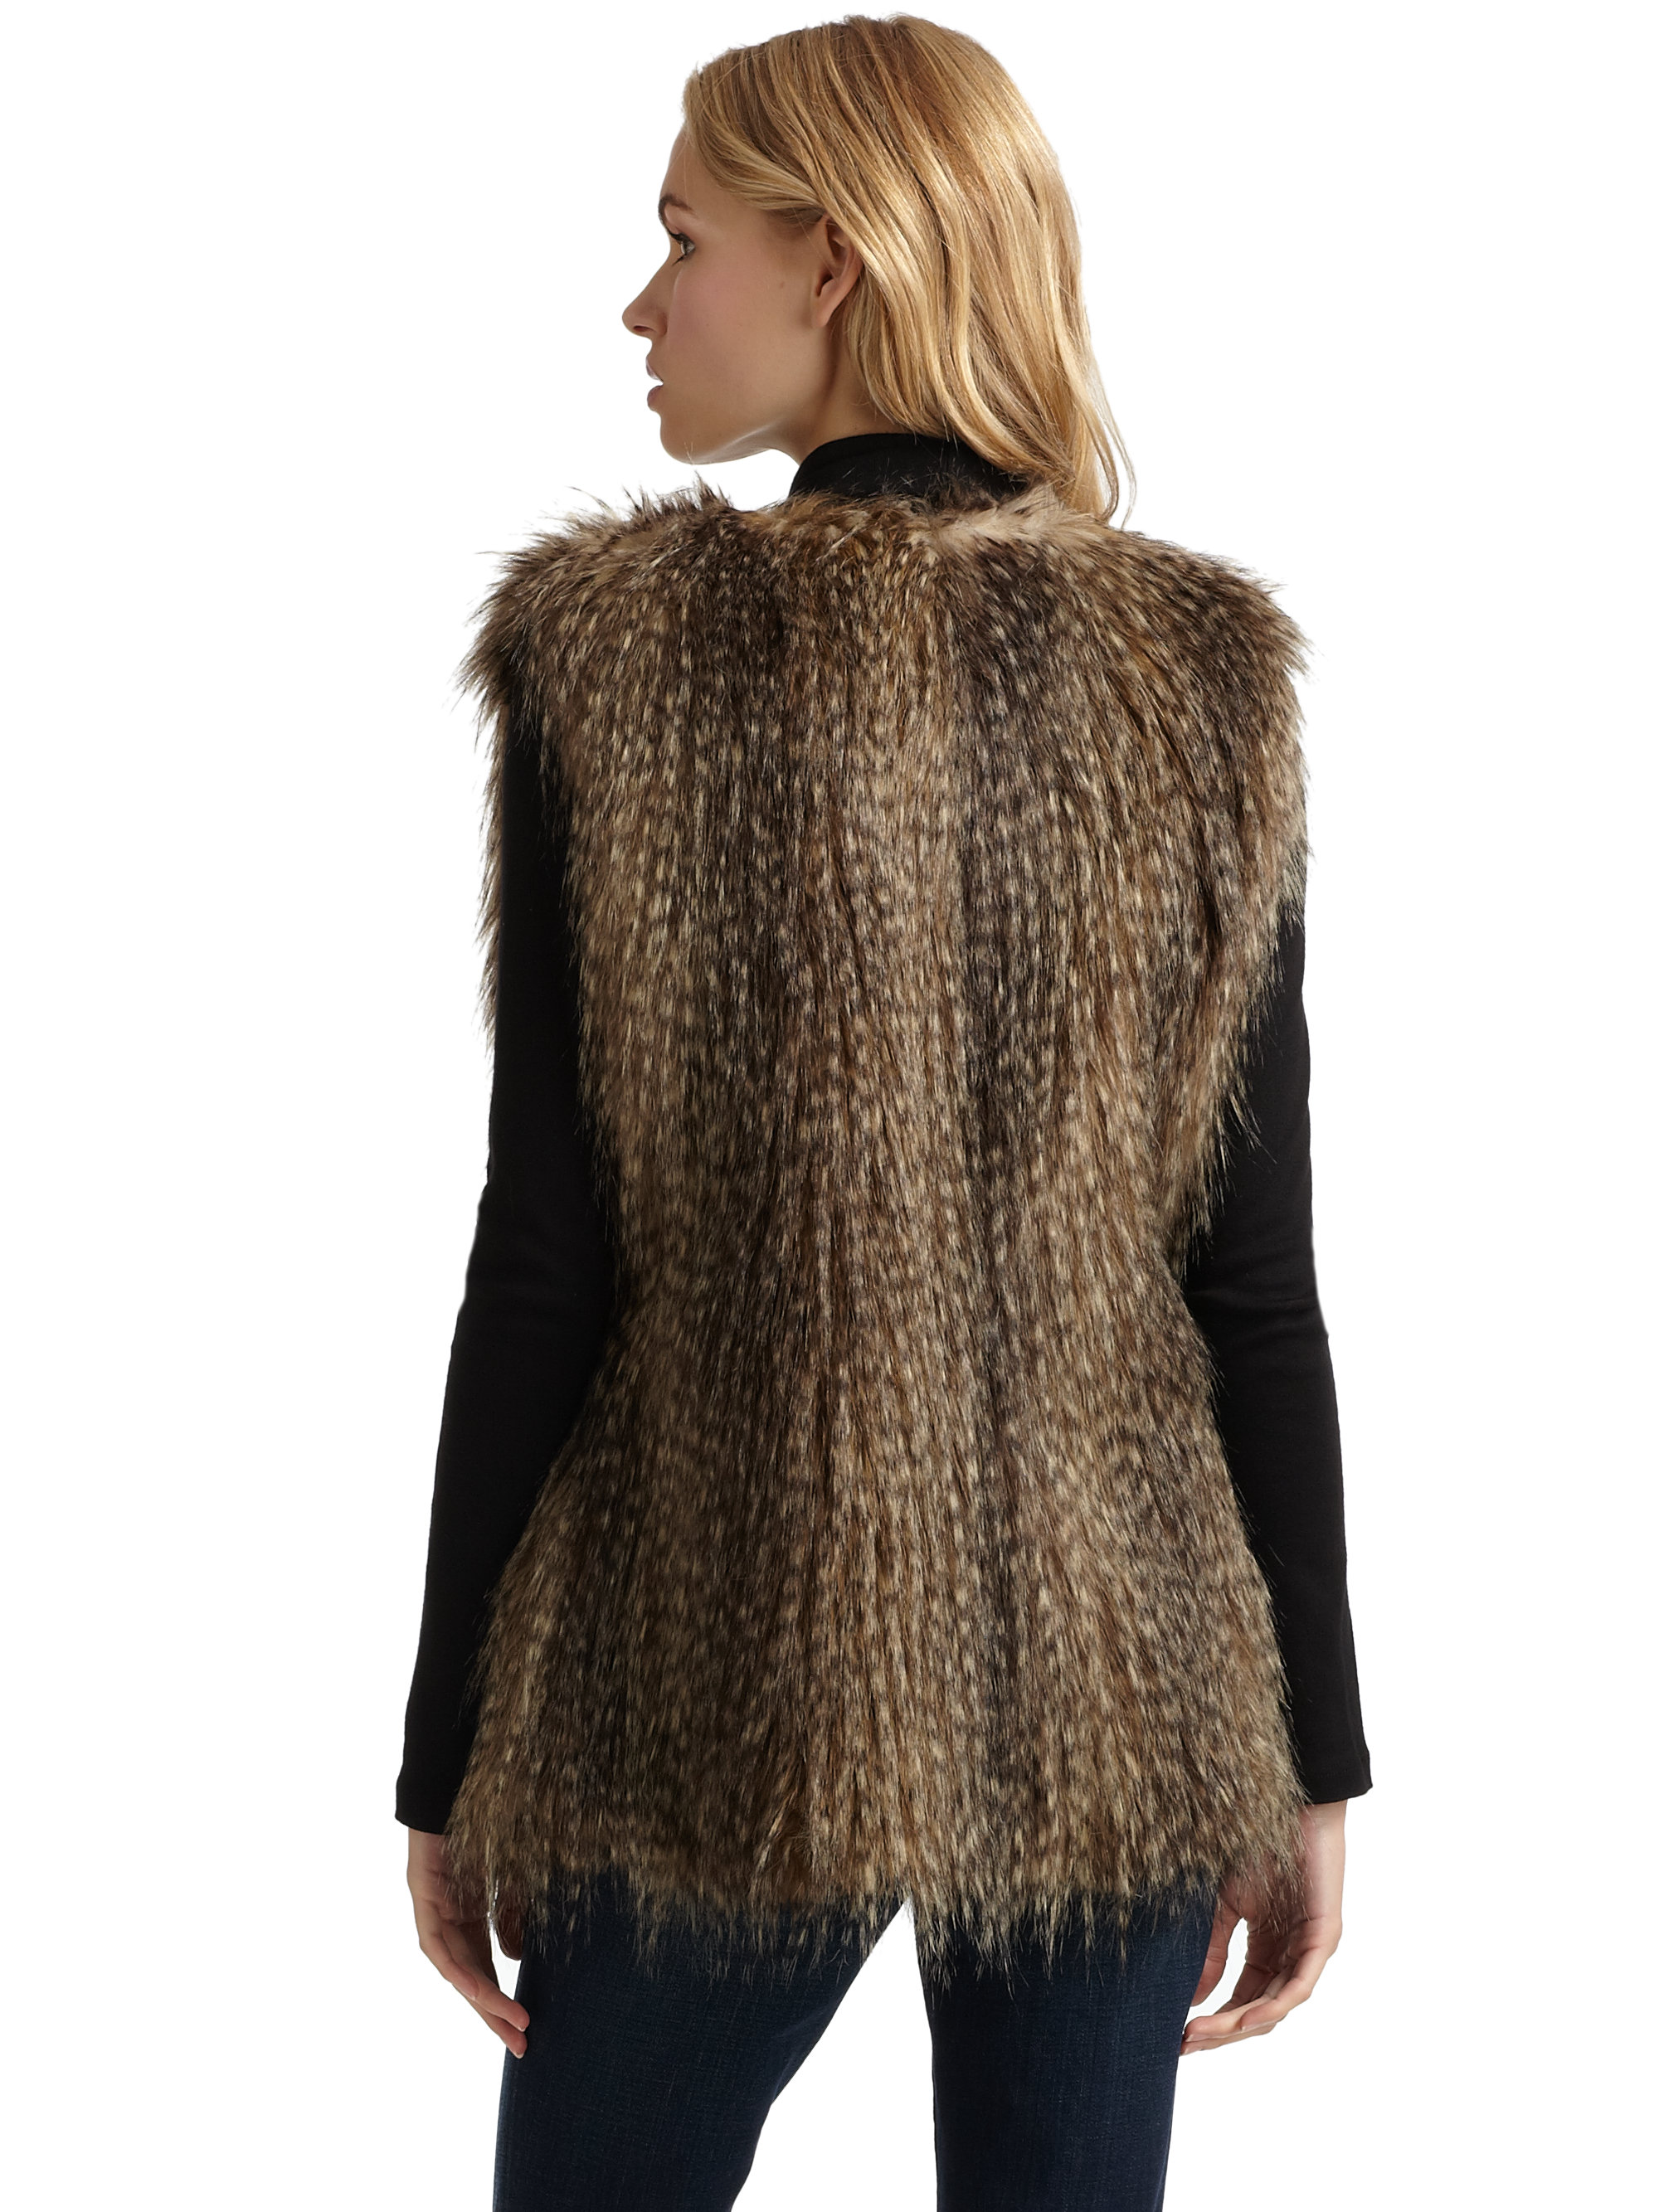 Mid-Length Brown Faux Fur Vest, si no tuviera boobis me lo compraba jajaja. Find this Pin and more on Chilly Outside by Kaitlyn Collins. Fall Look. Faux Fur Vest with Flannel. I really like the look of (faux) fur vests with red-based flannels and jeans!